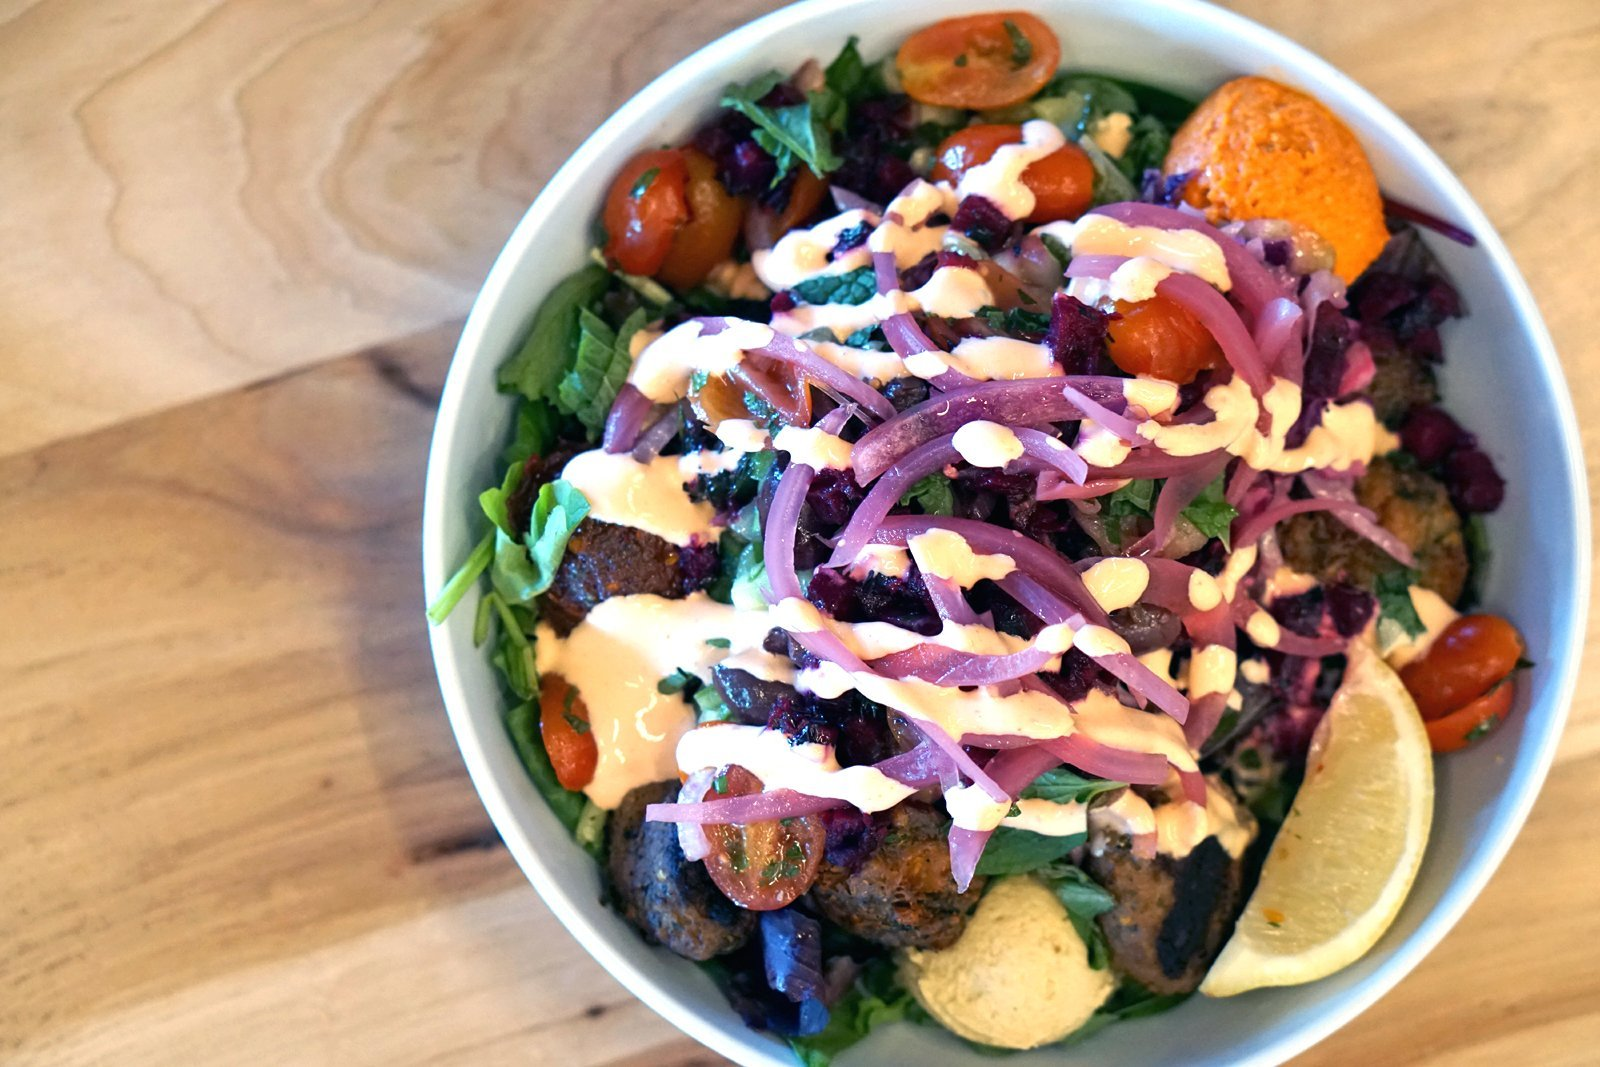 Cava Grill Brings a New Elevated Experience to Fast Casual Dining